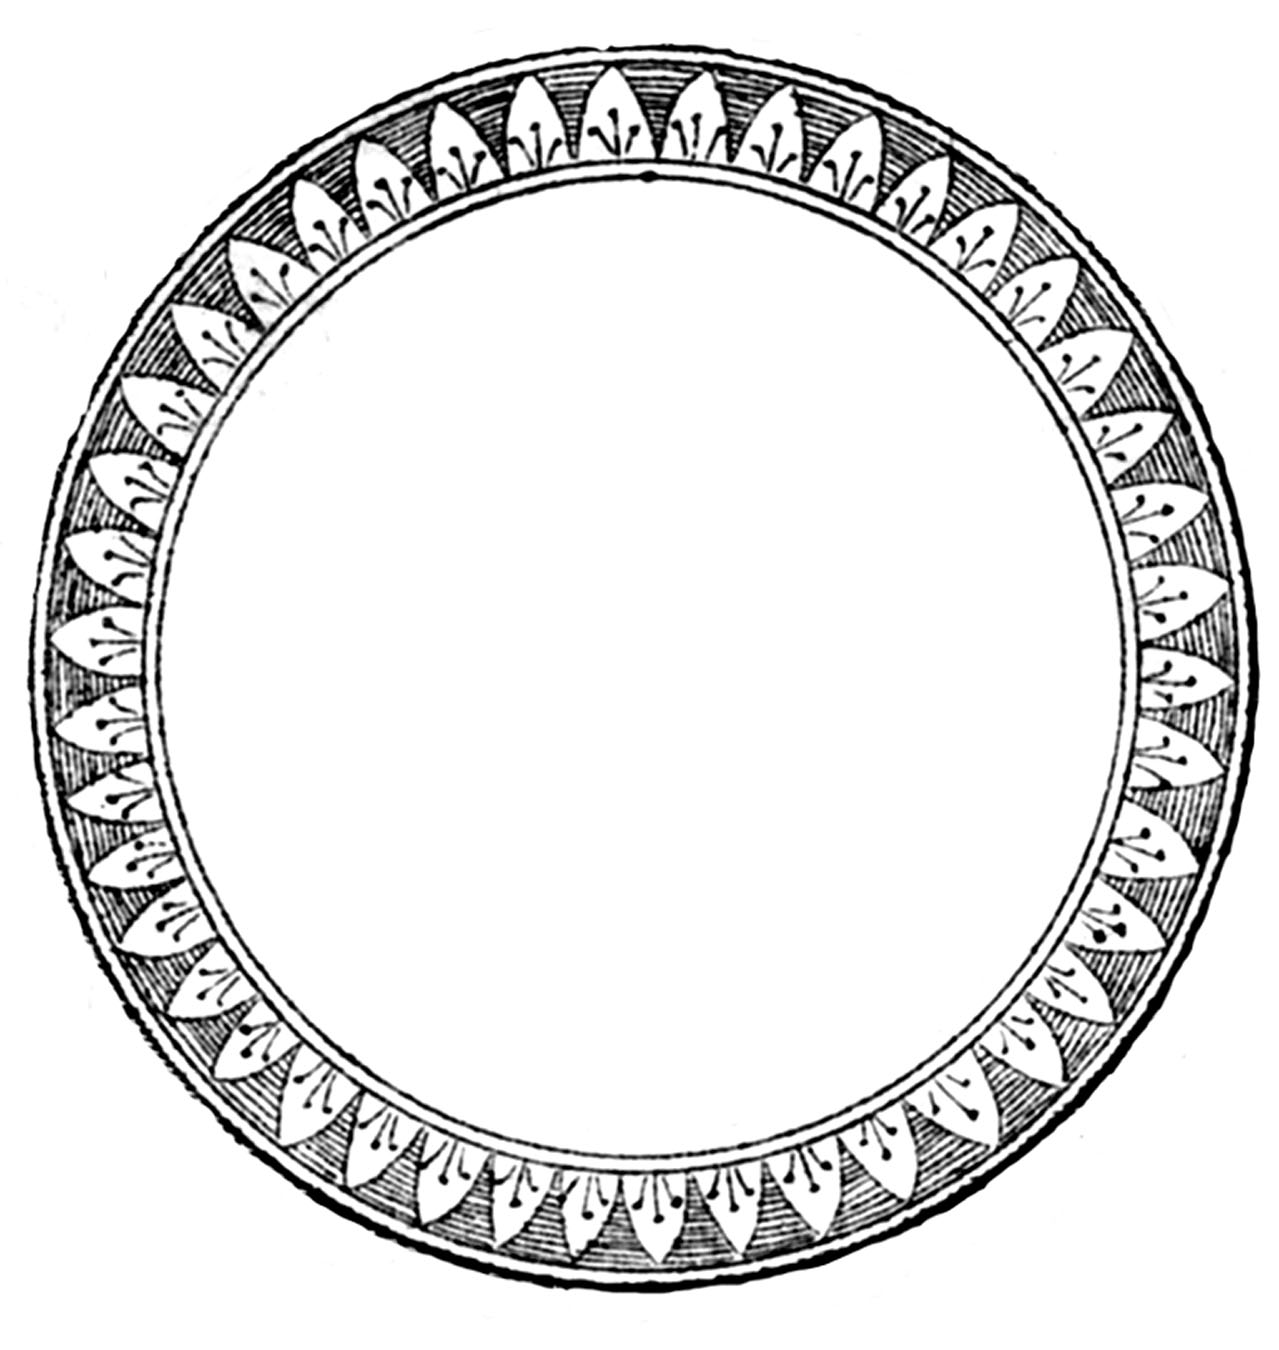 Frame clipart round Label French Vintage Round Frame